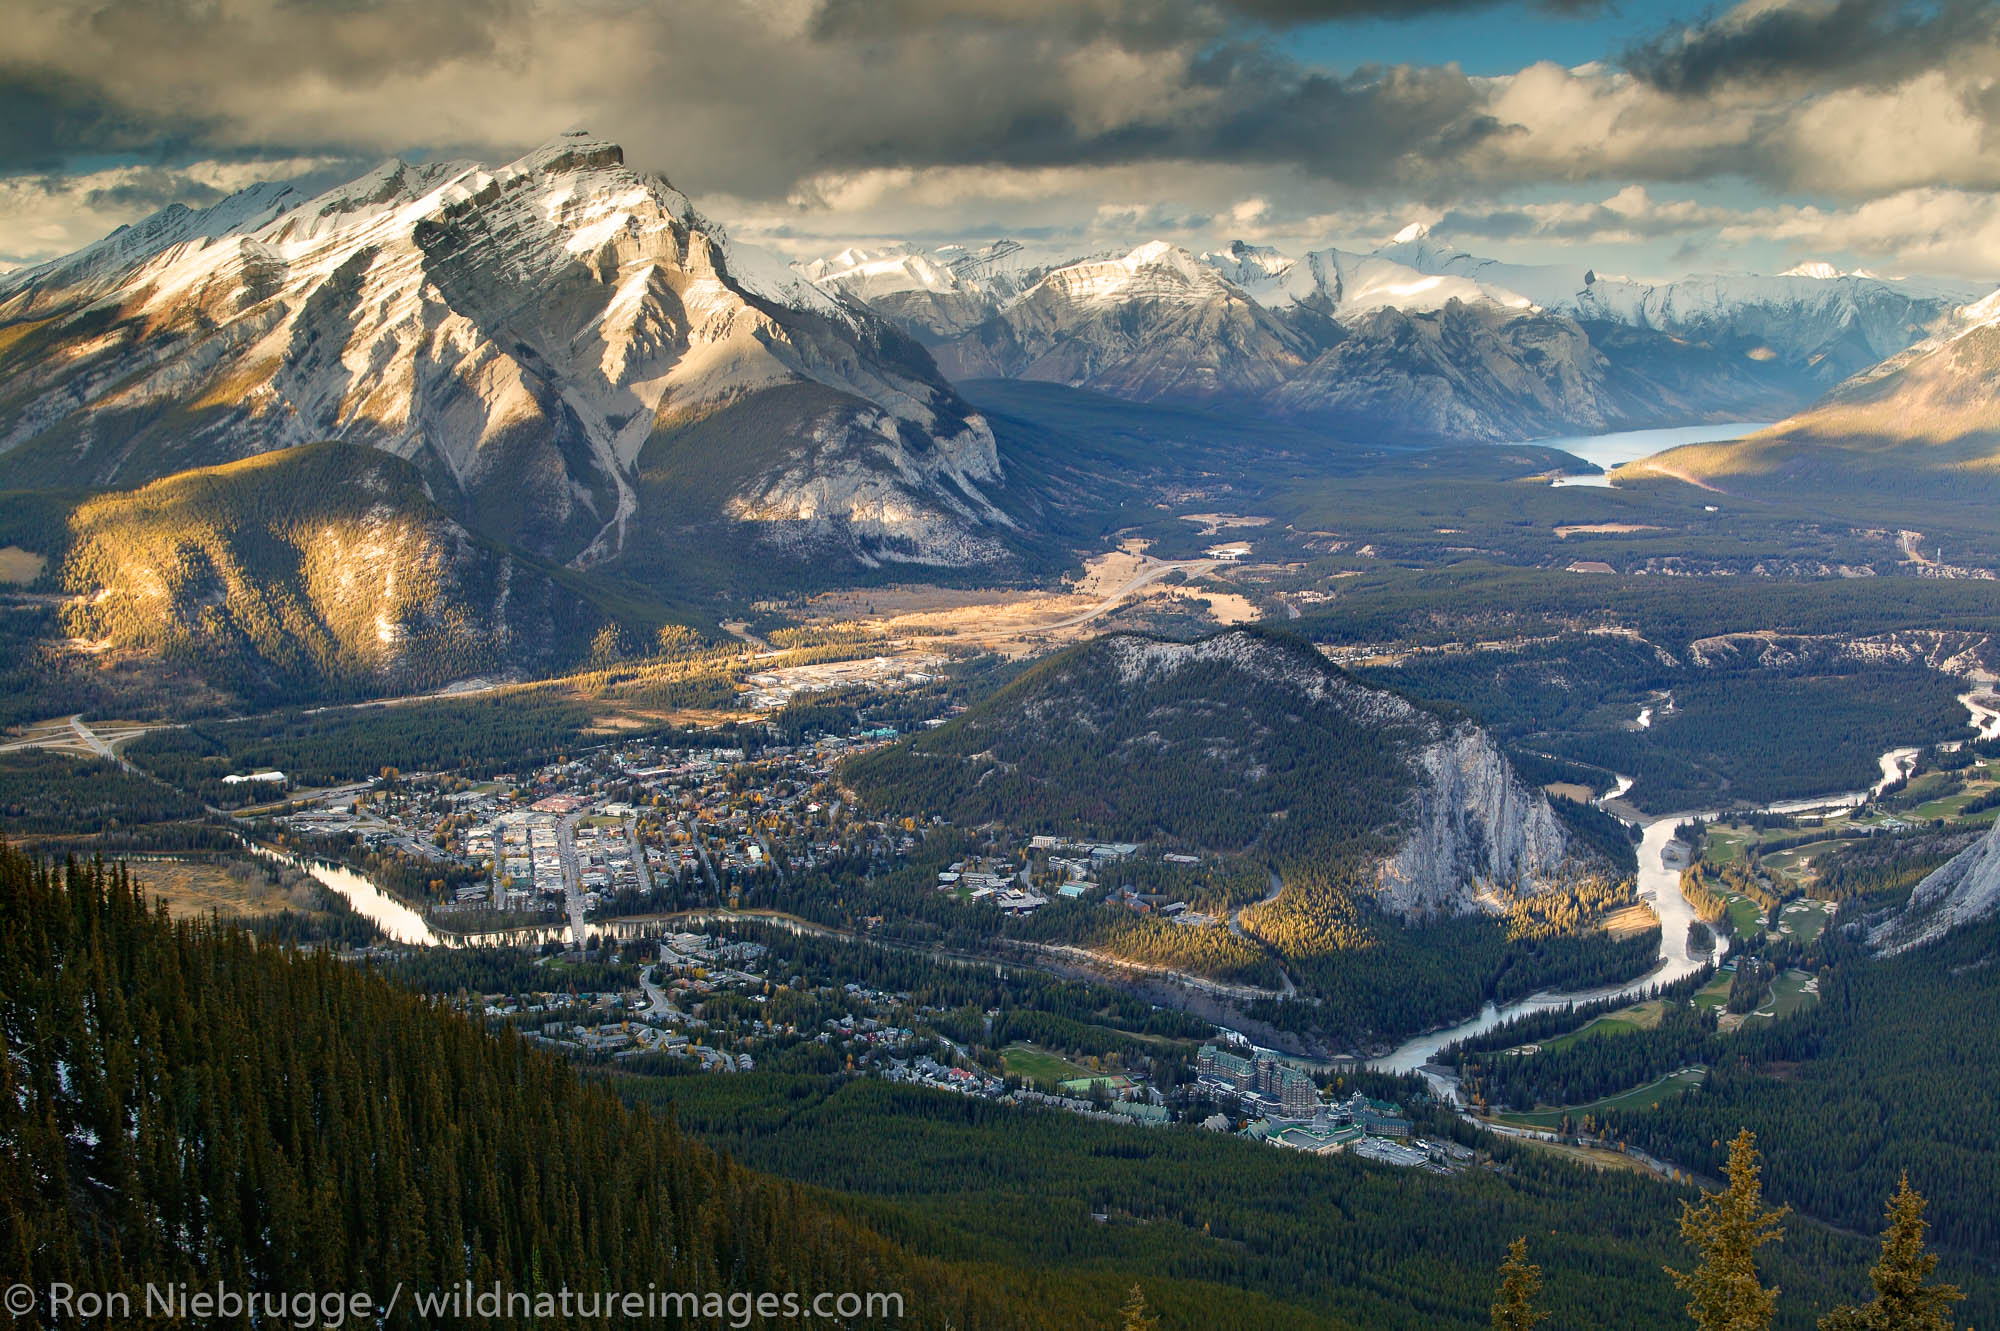 The town of Banff viewed from the Banff Gondola, Banff National Park, Alberta, Canada.